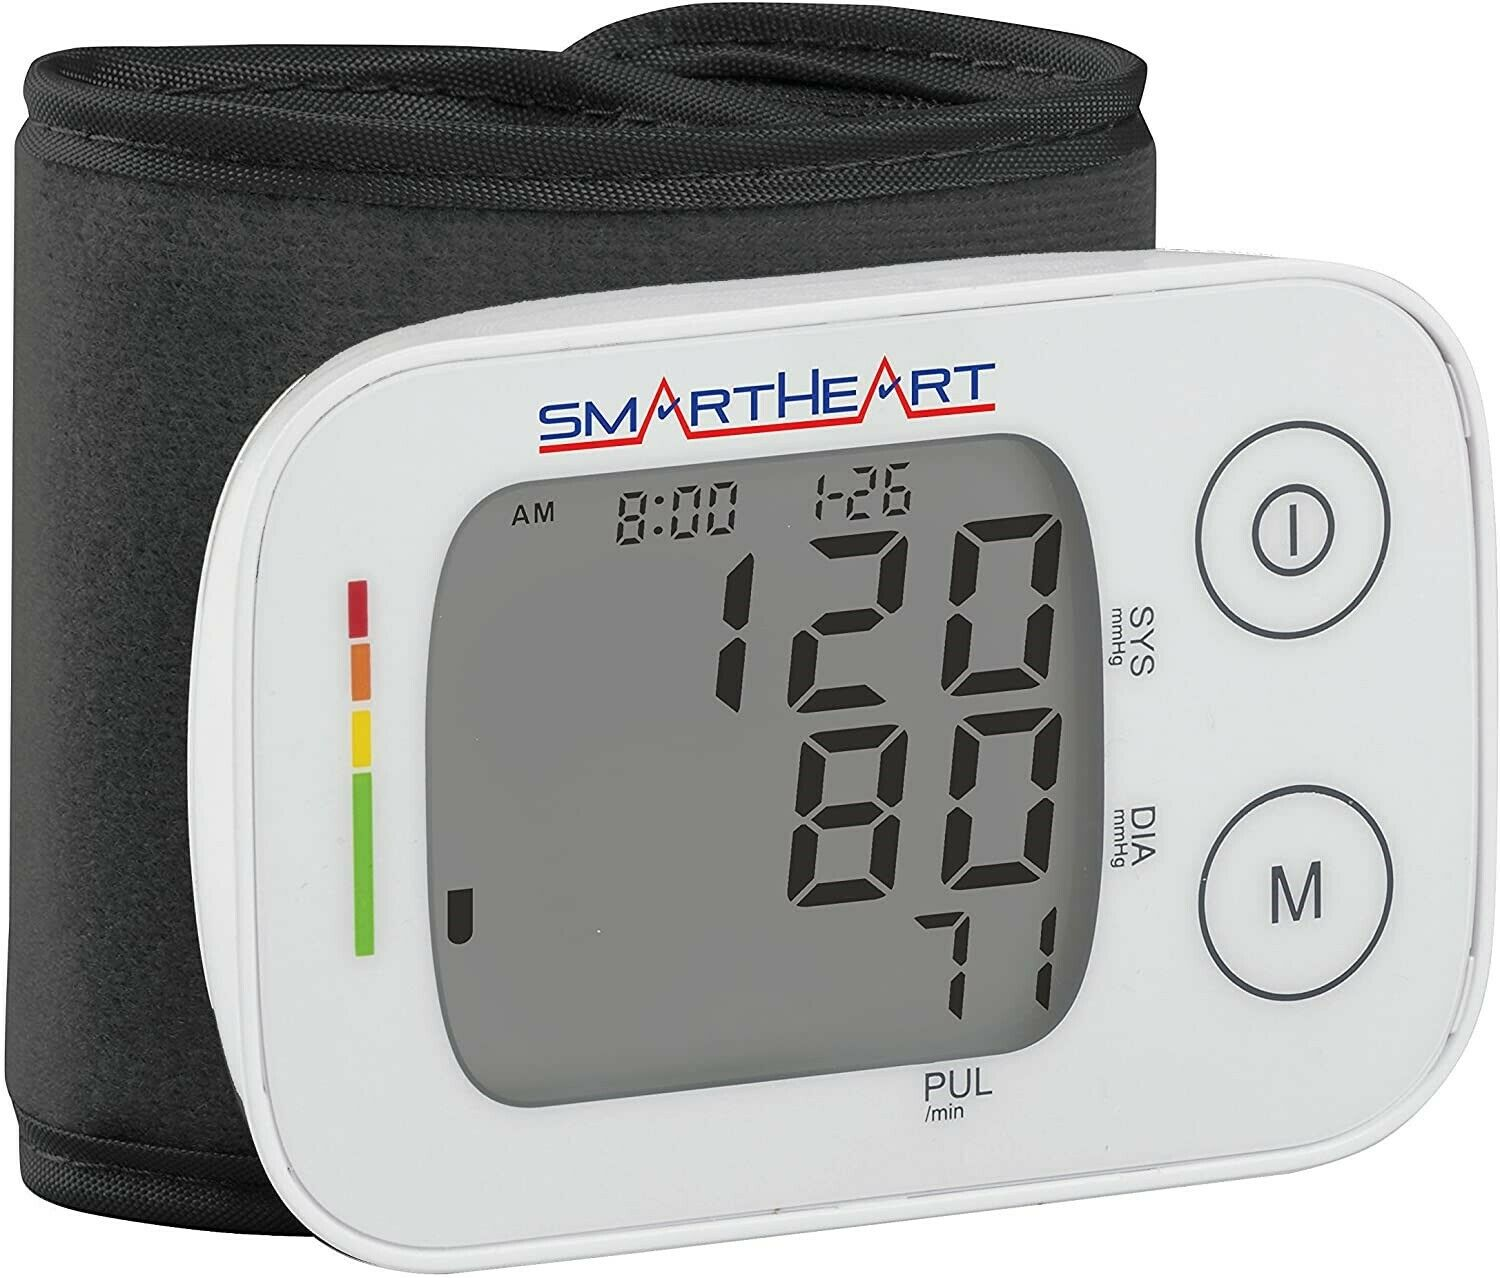 SMART HEART BLOOD PRESSURE MONITOR WITH ADULT WRIST CUFF AUT